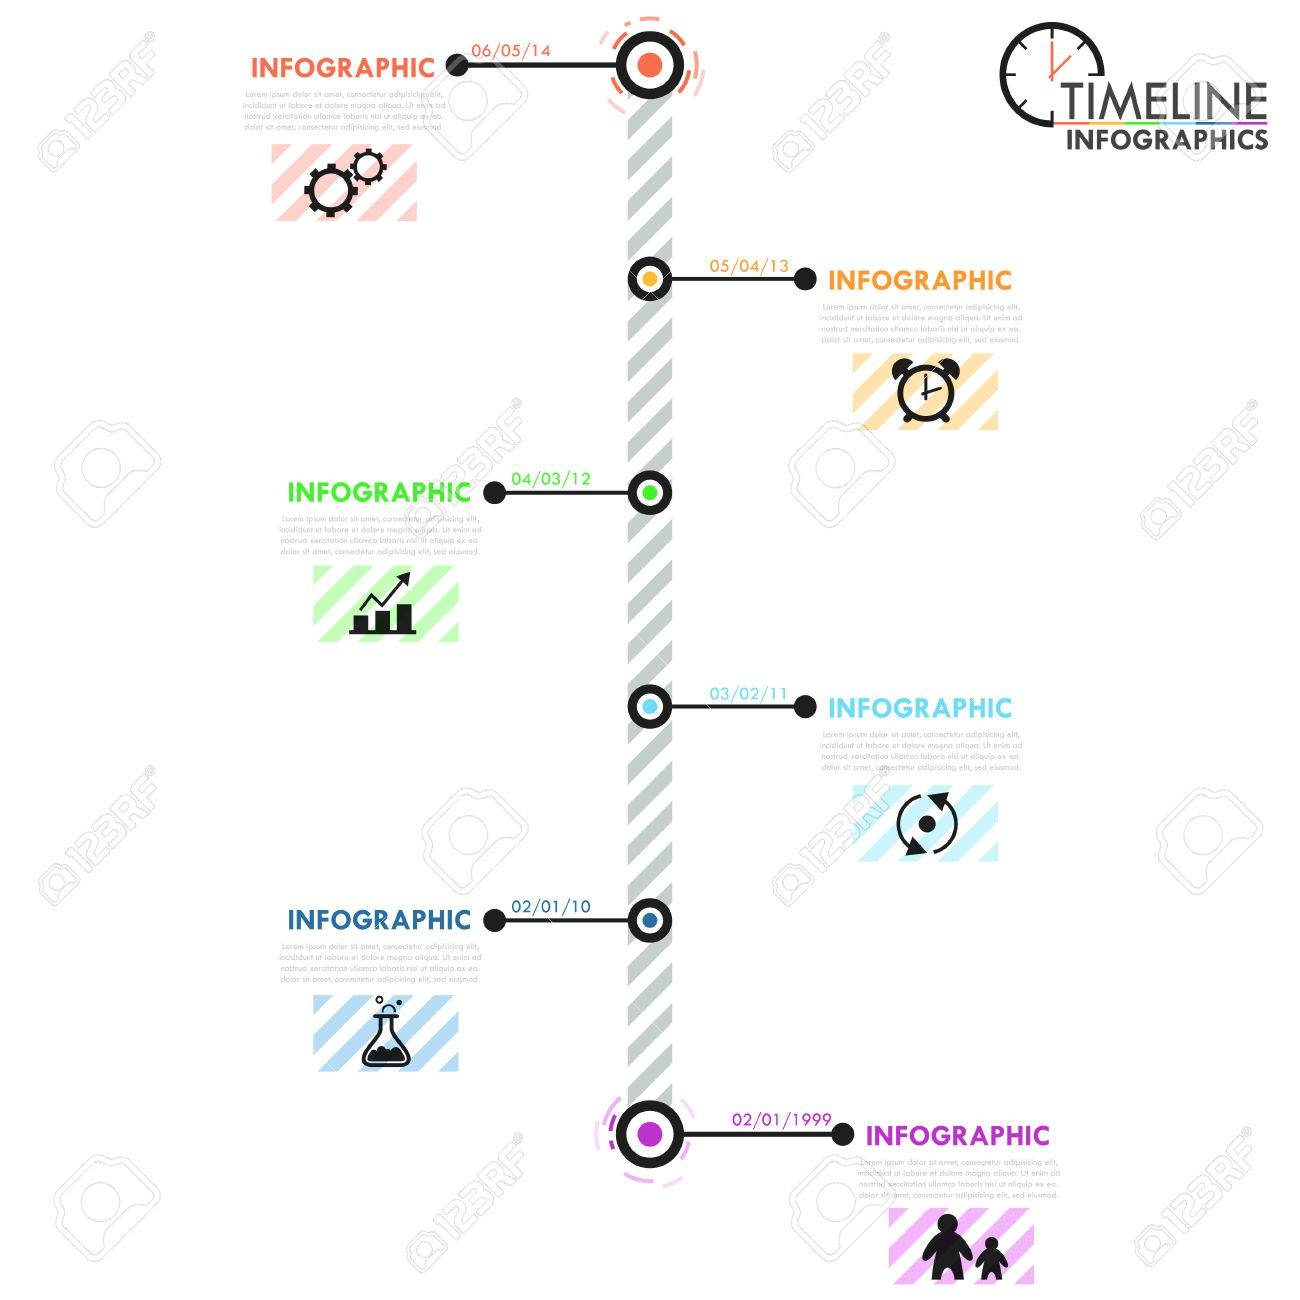 minimal infographics timeline template with simple shapes circles icons and text vector